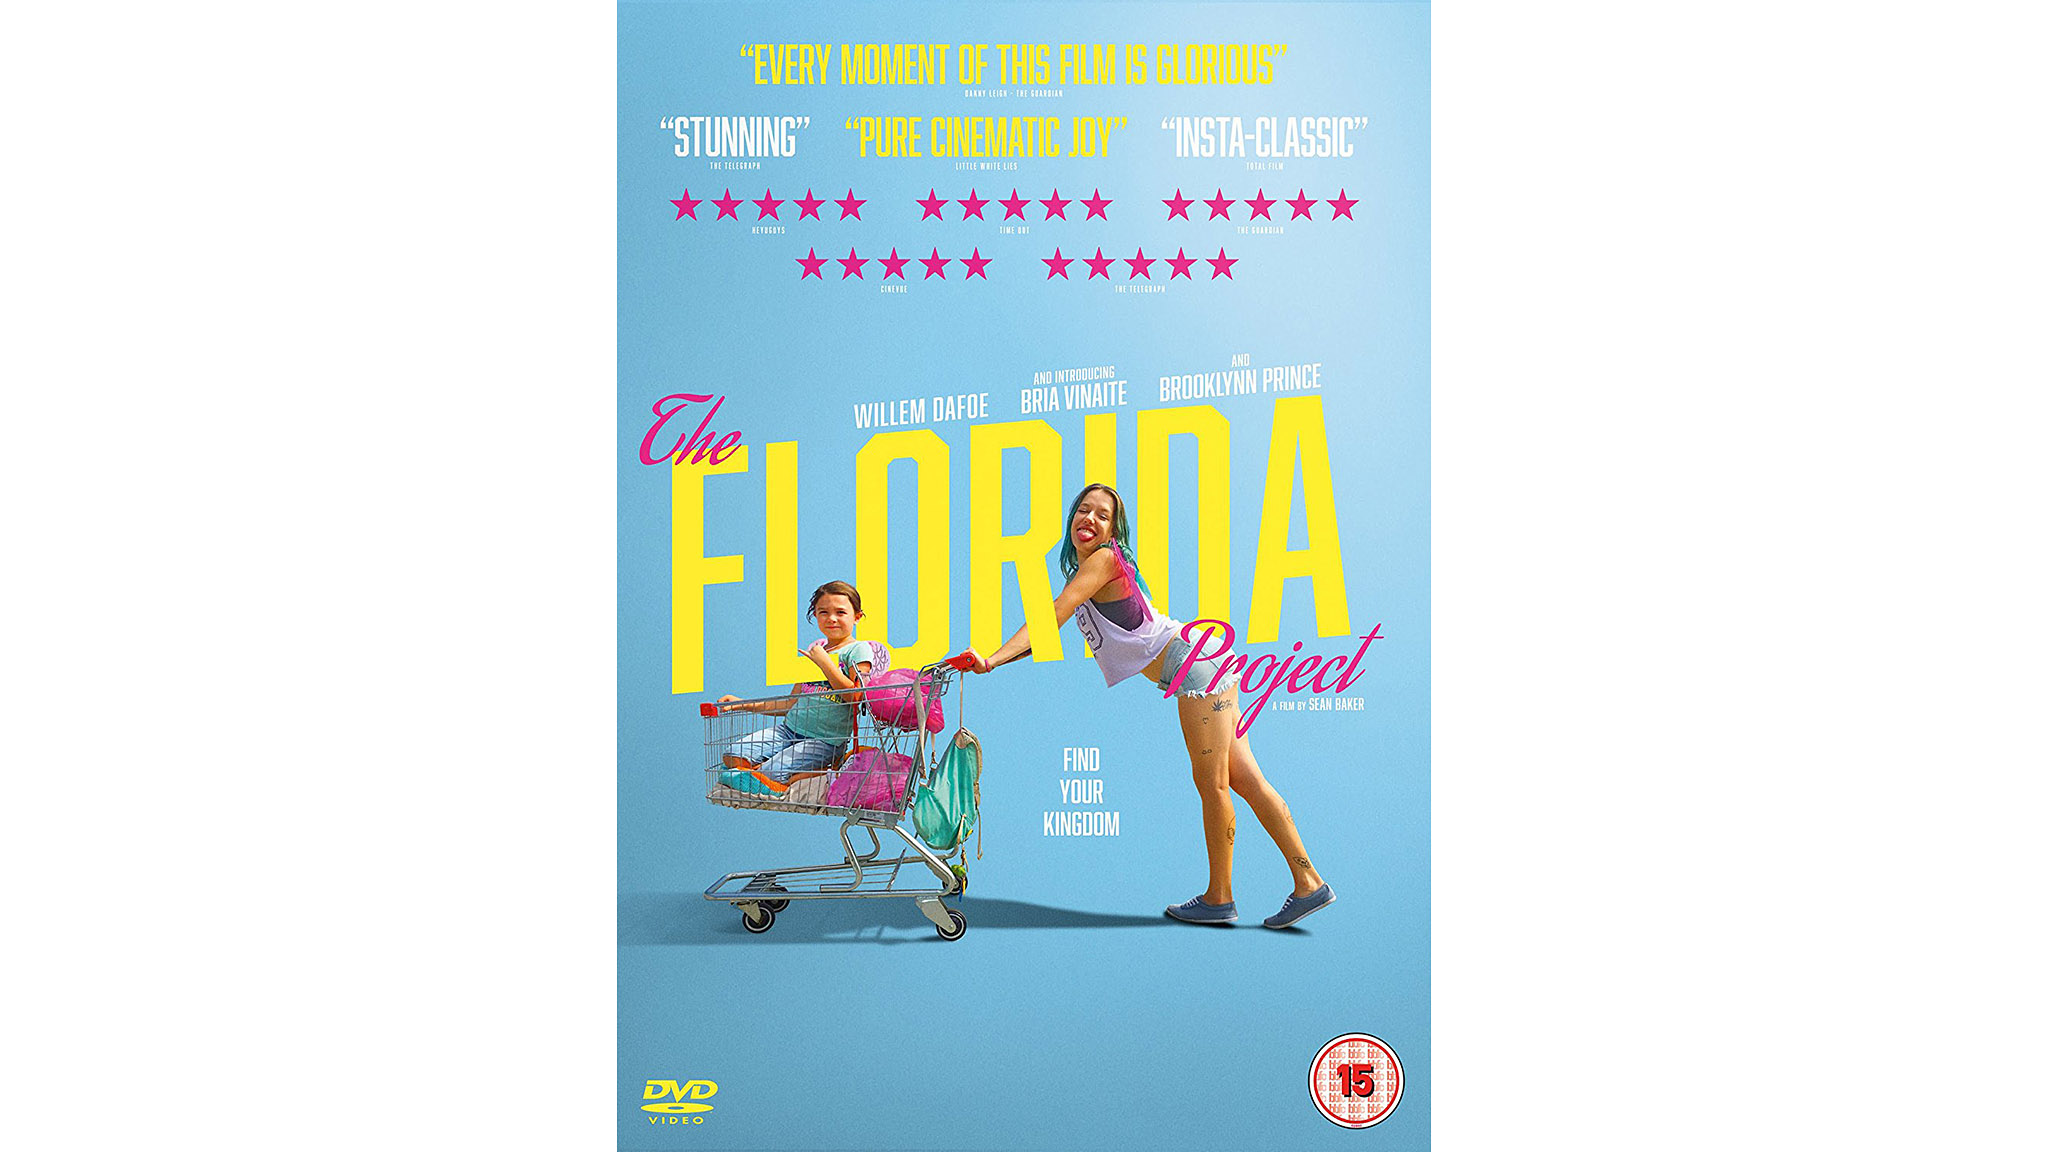 Download: The Florida Project — 'an outstanding film